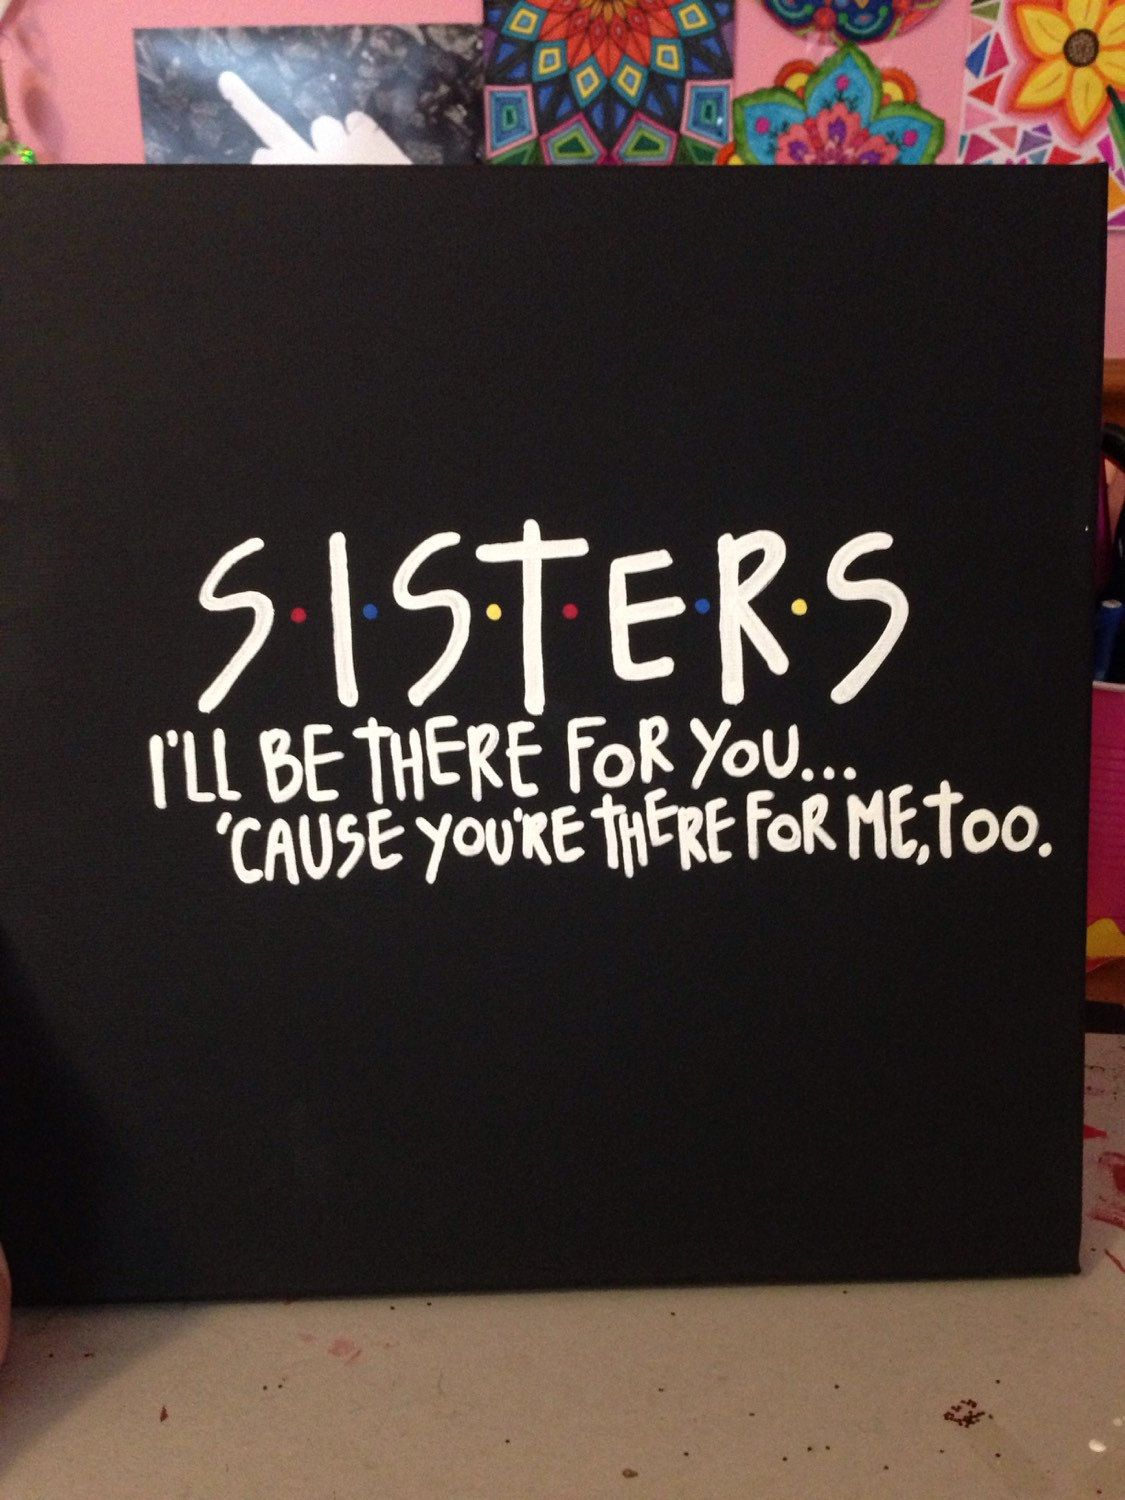 Friends series sister canvas ill be there for you